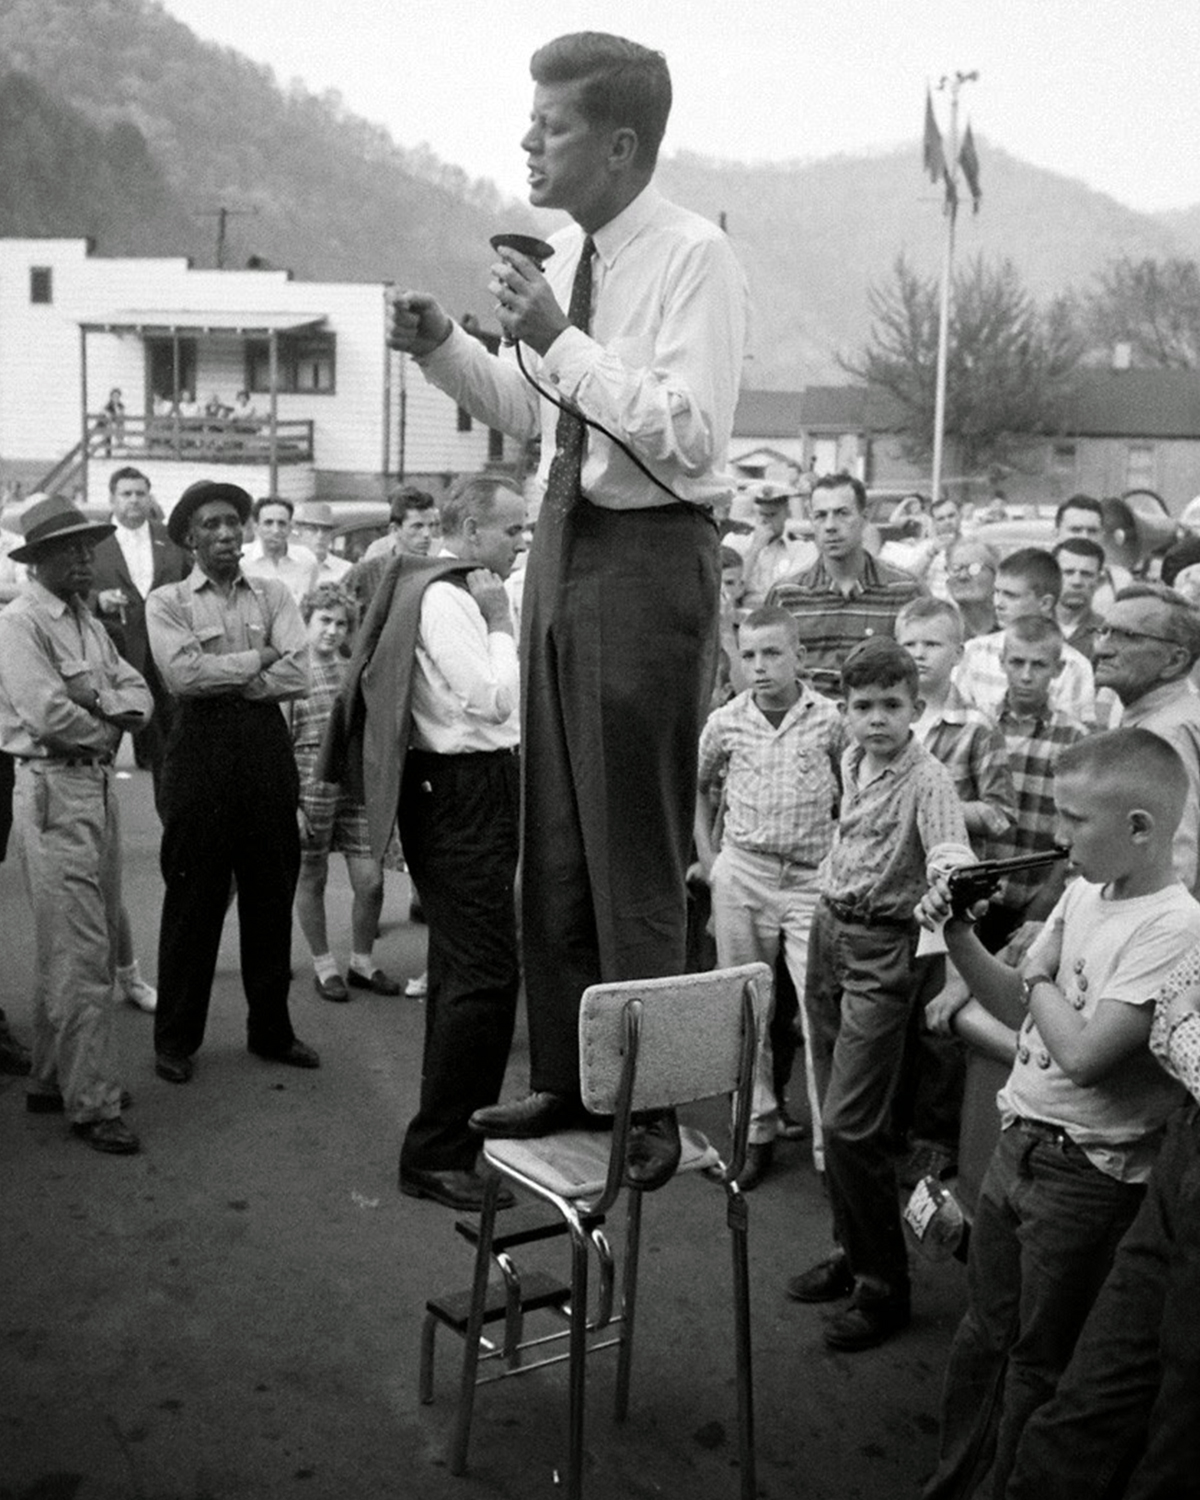 John F. Kennedy campaigns in rural West Virginia, precariously perched on a high-chair to deliver his speech. 1960